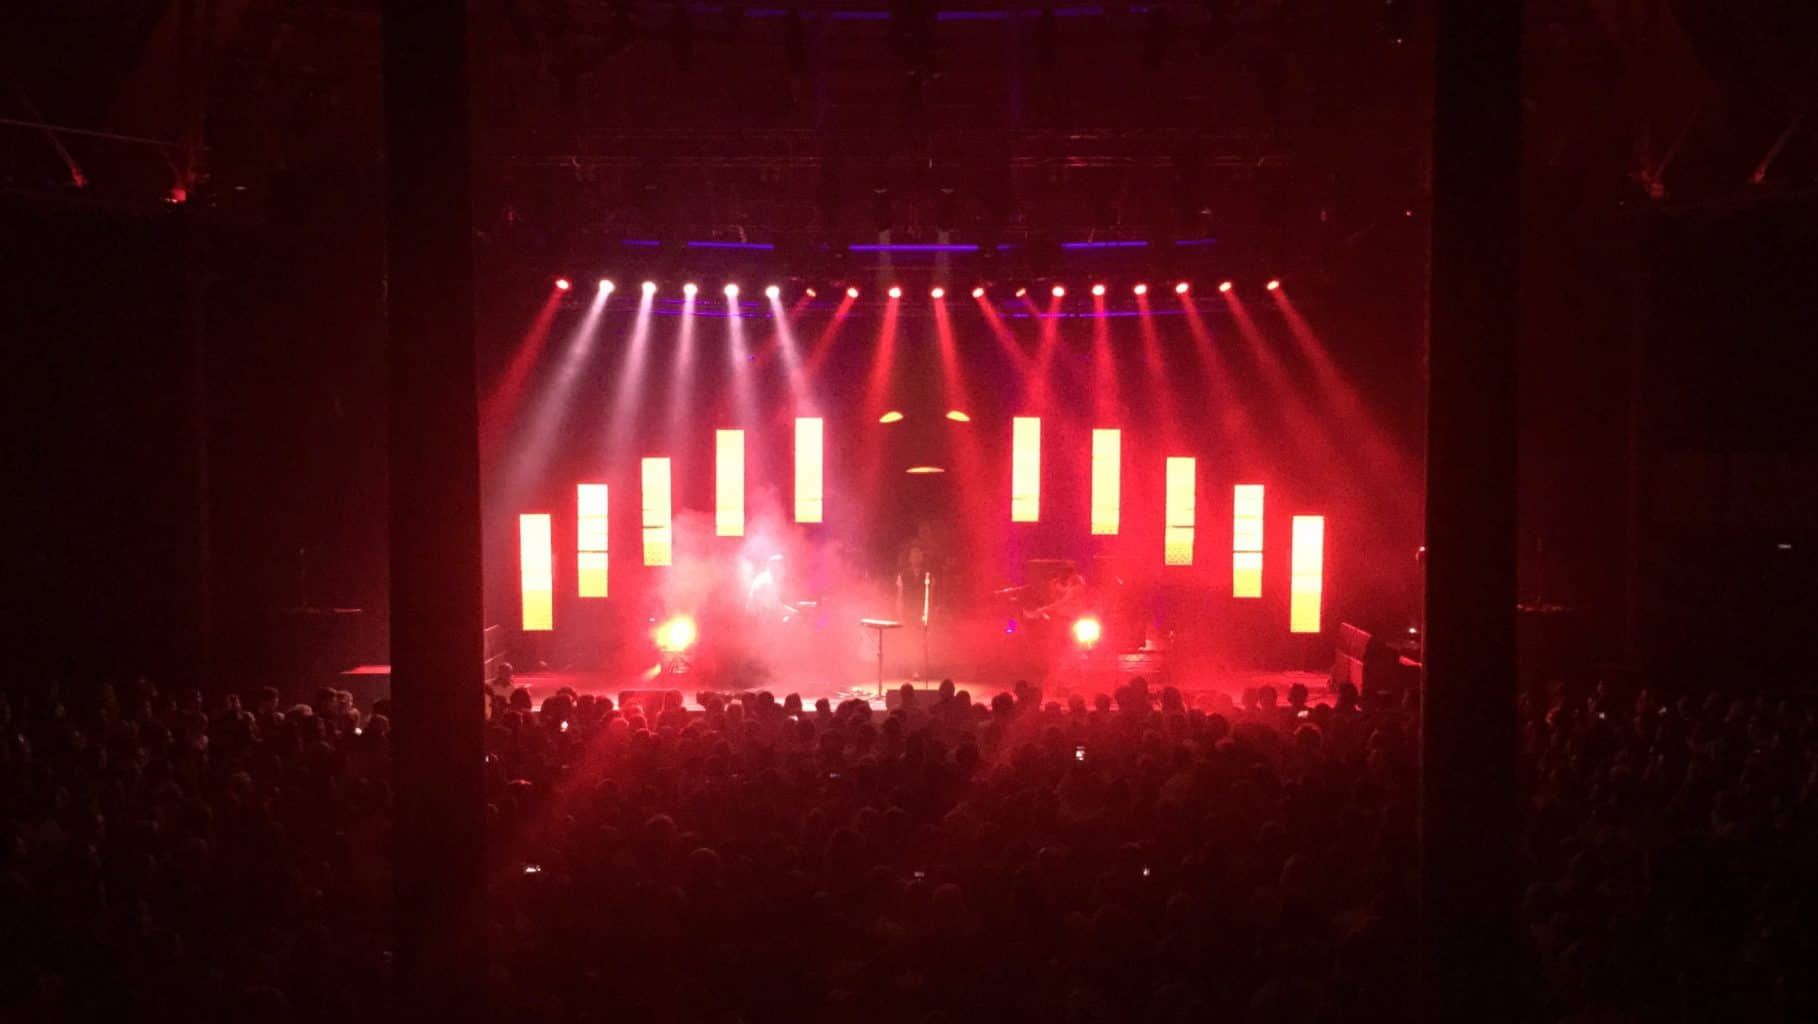 wild-beasts-tour-2016-roundhouse-london-vortex-events-23 Vortex Events